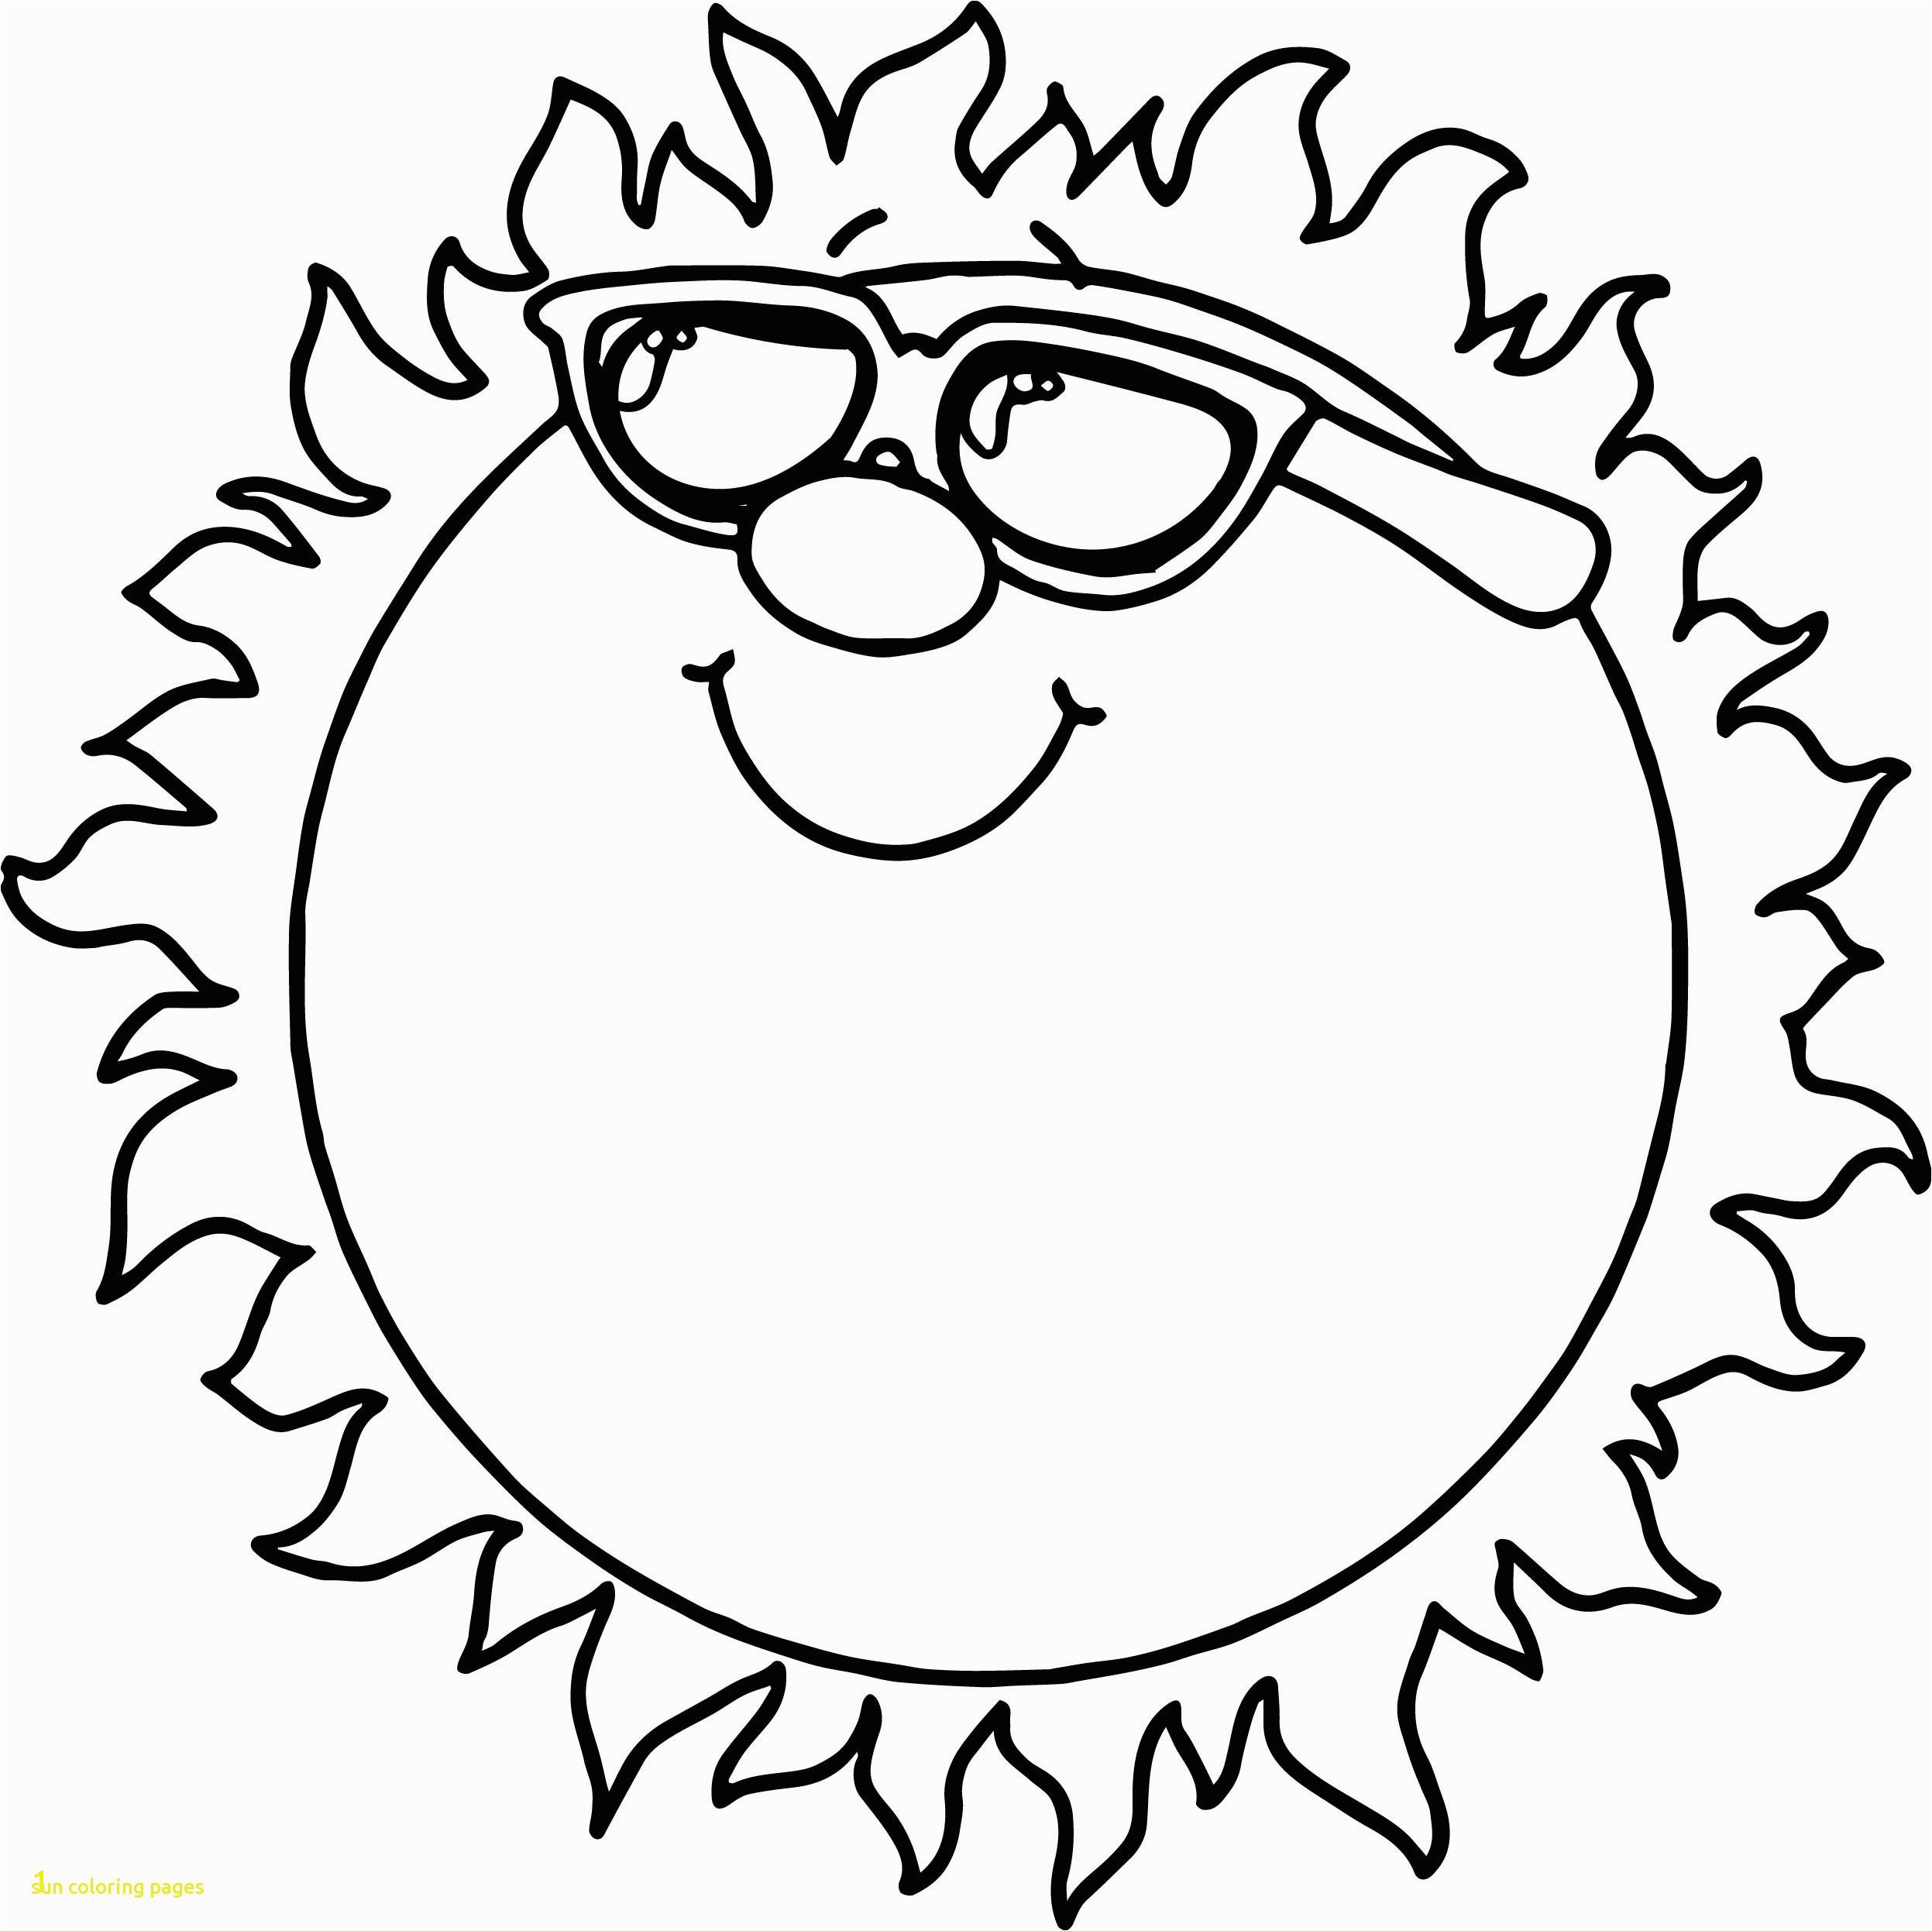 sun coloring for kids sun coloring pages free printables momjunction kids coloring for sun